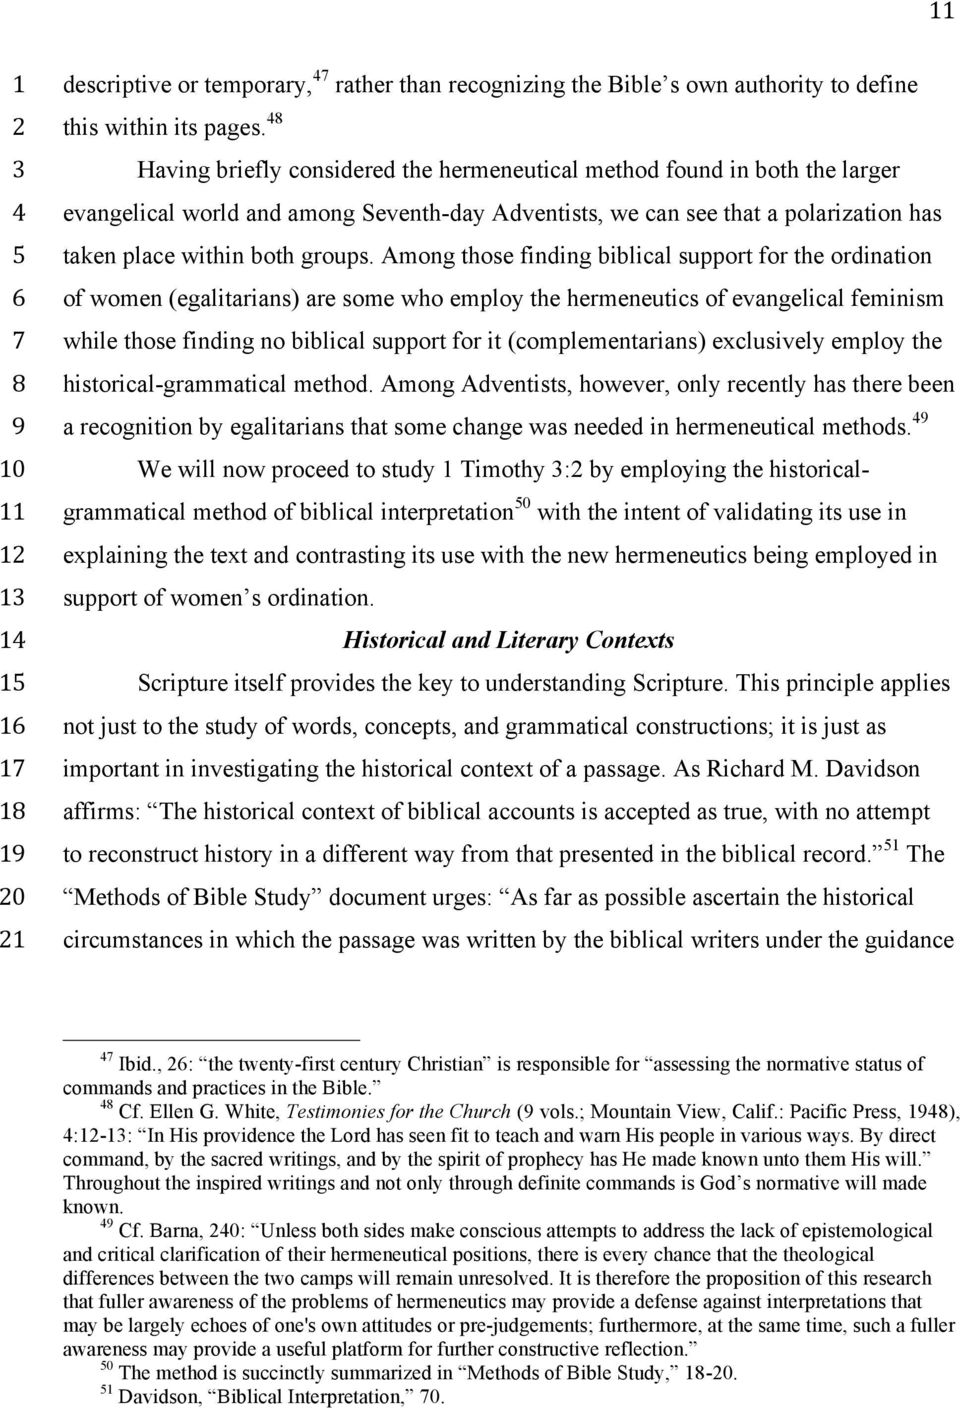 Among those finding ilical support for the ordination of women (egalitarians) are some who employ the hermeneutics of evangelical feminism while those finding no ilical support for it